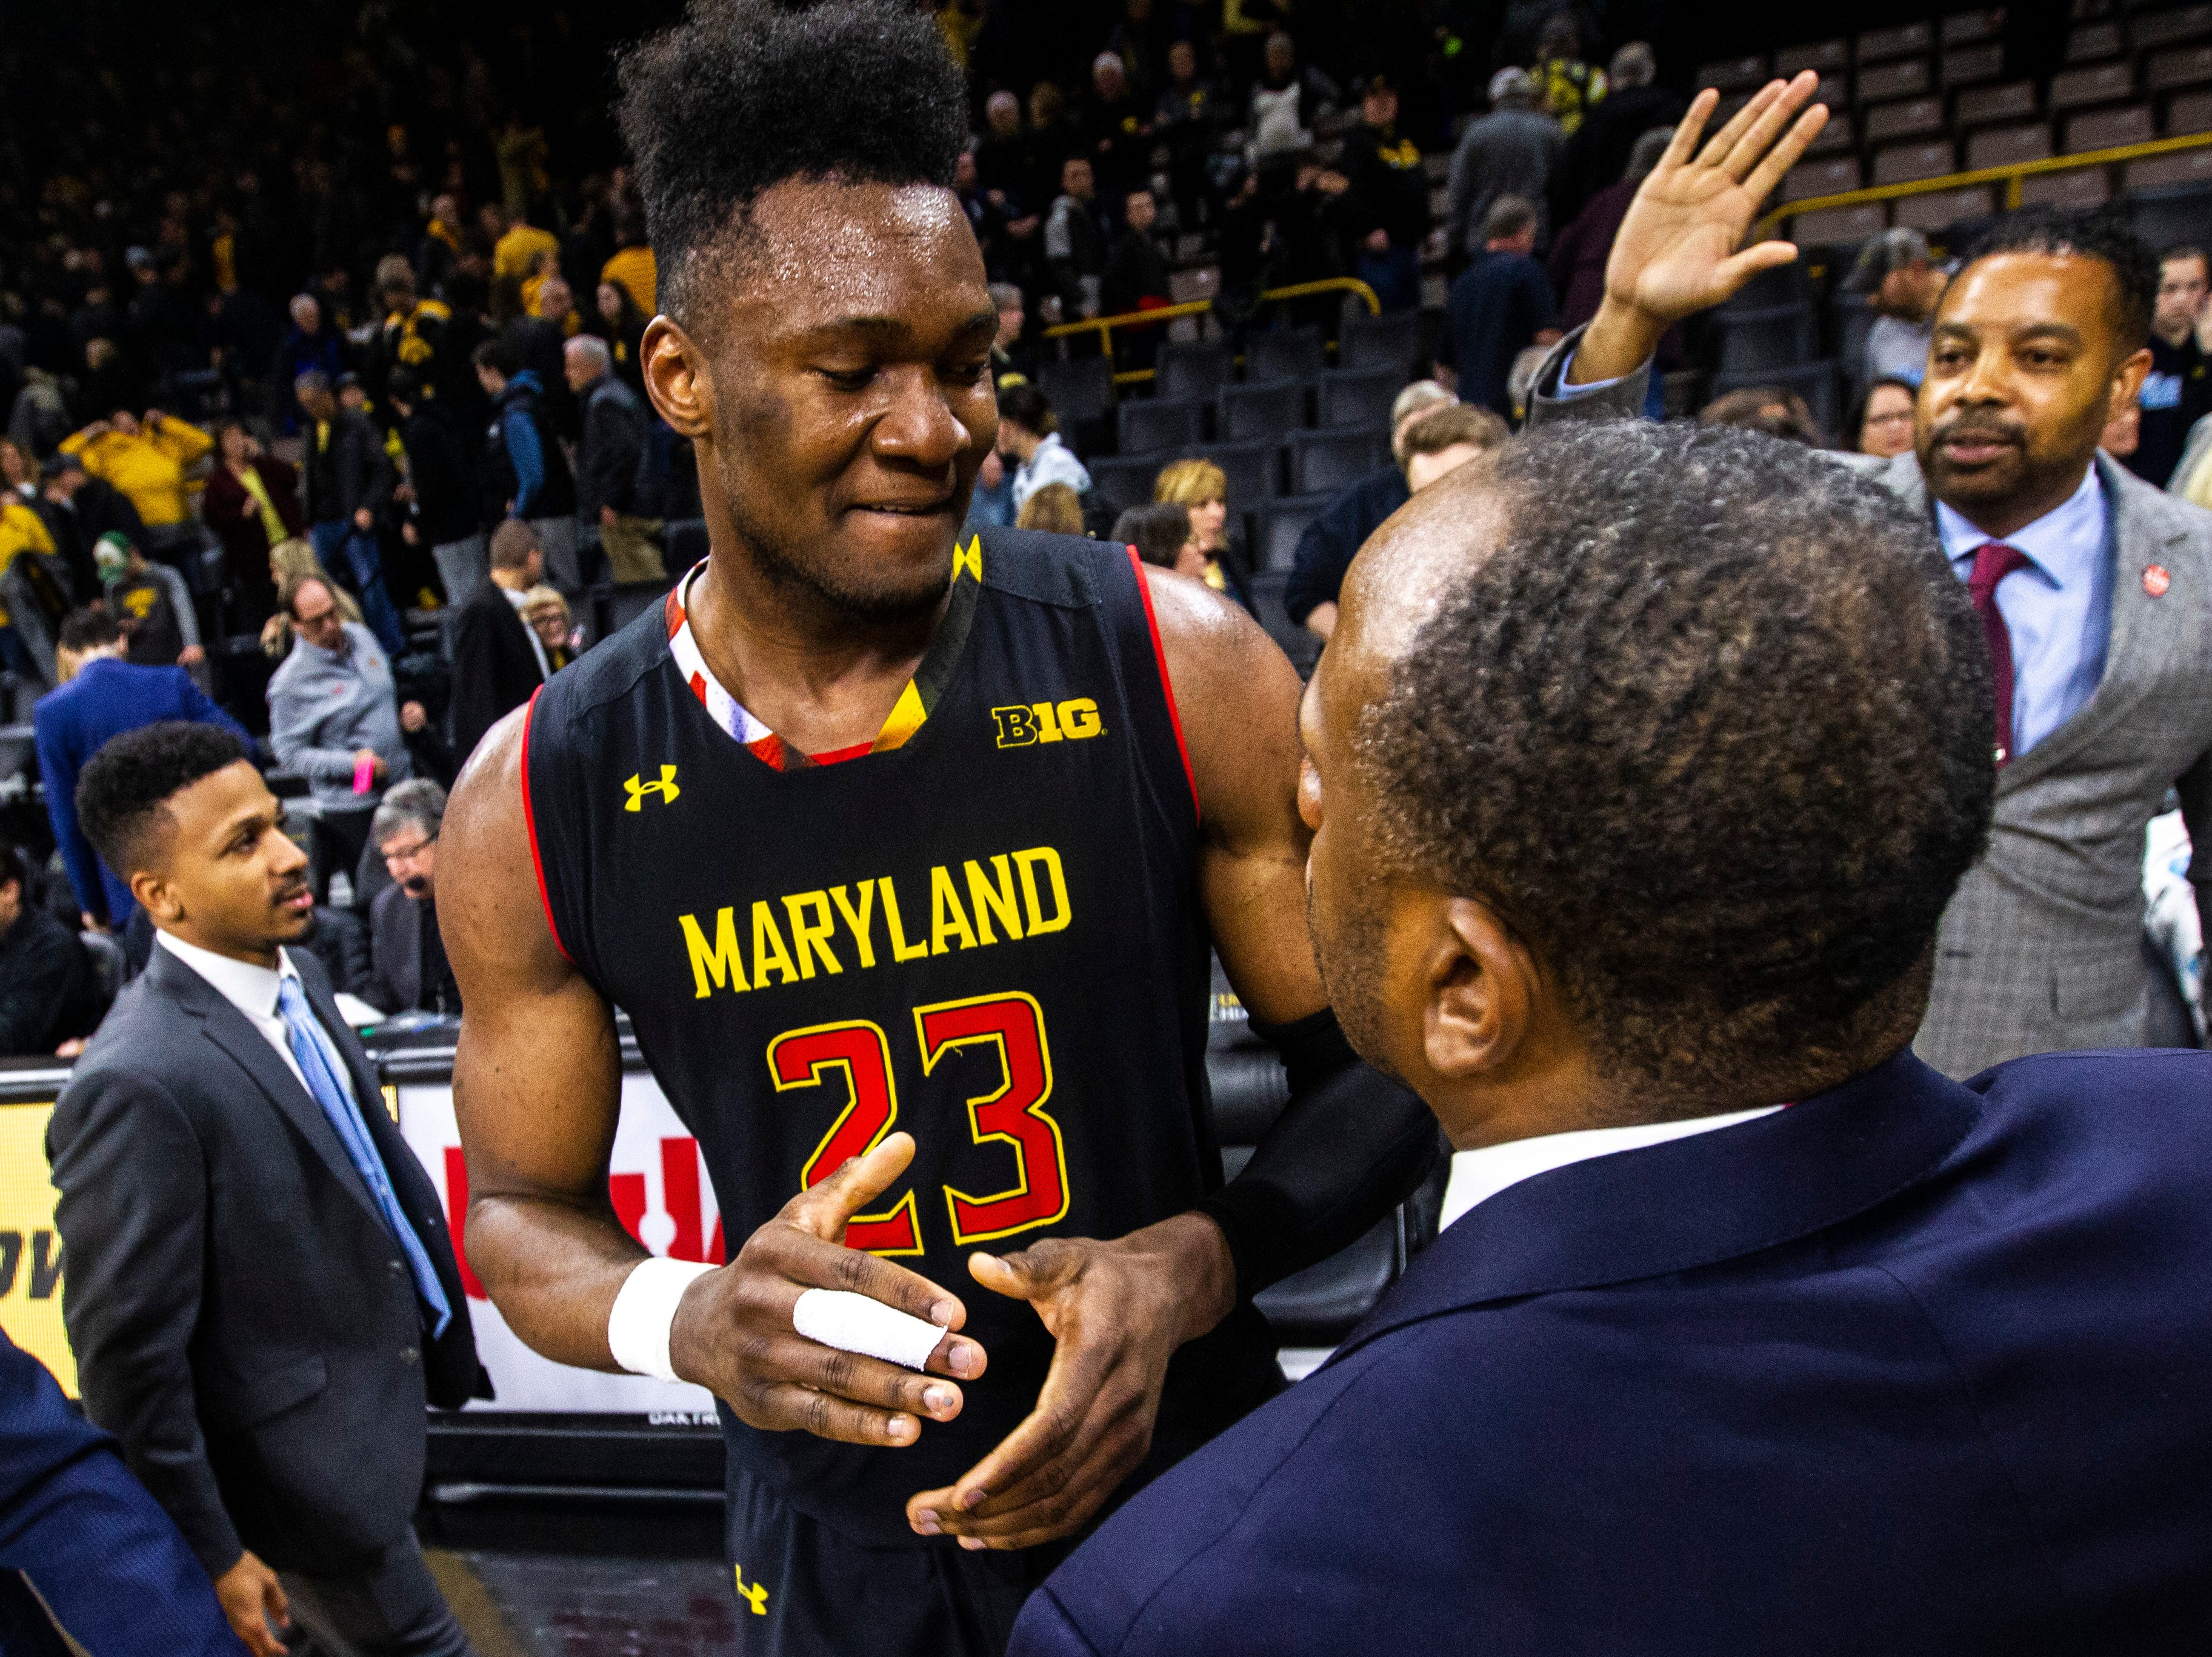 Maryland forward Bruno Fernando (23) celebrates with coaches after a NCAA Big Ten Conference men's basketball game against the Iowa Hawkeyes on Tuesday, Feb. 19, 2019 at Carver-Hawkeye Arena in Iowa City, Iowa.